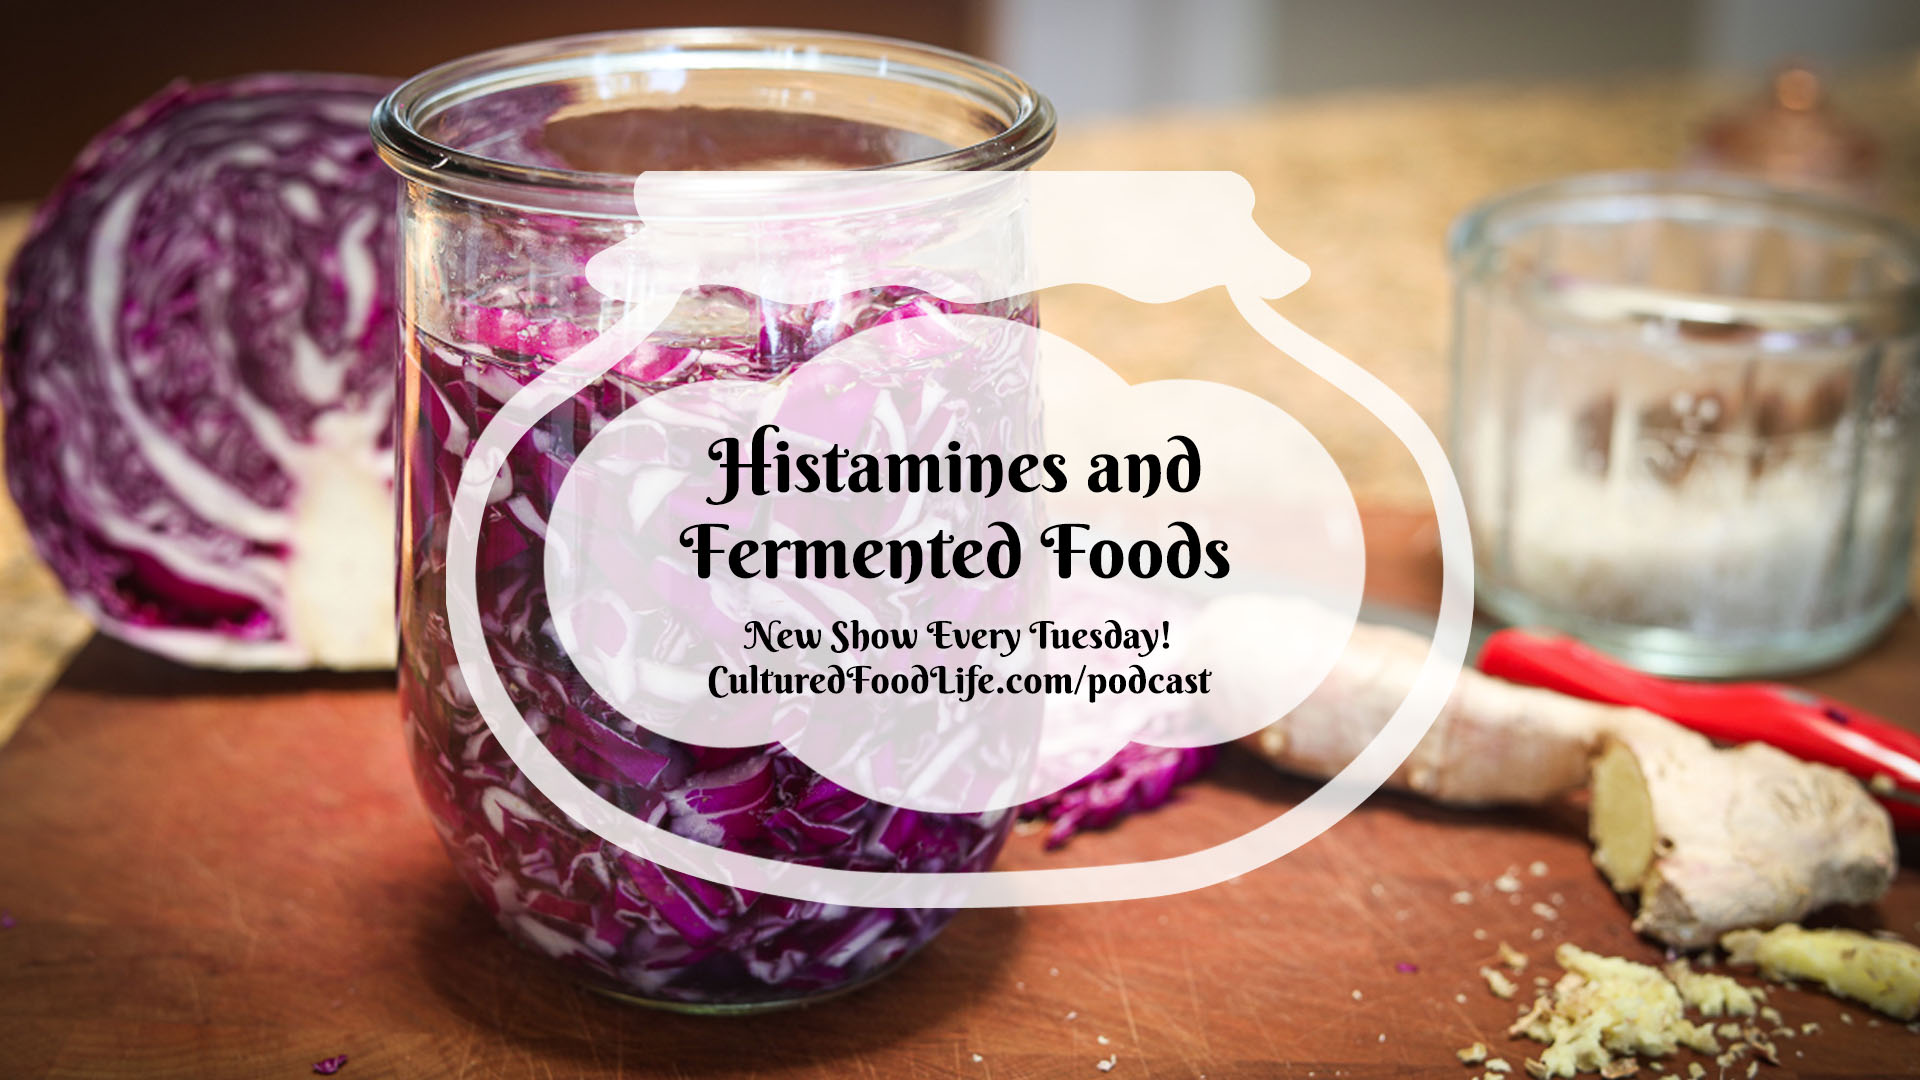 Histamines and Fermented Foods Full